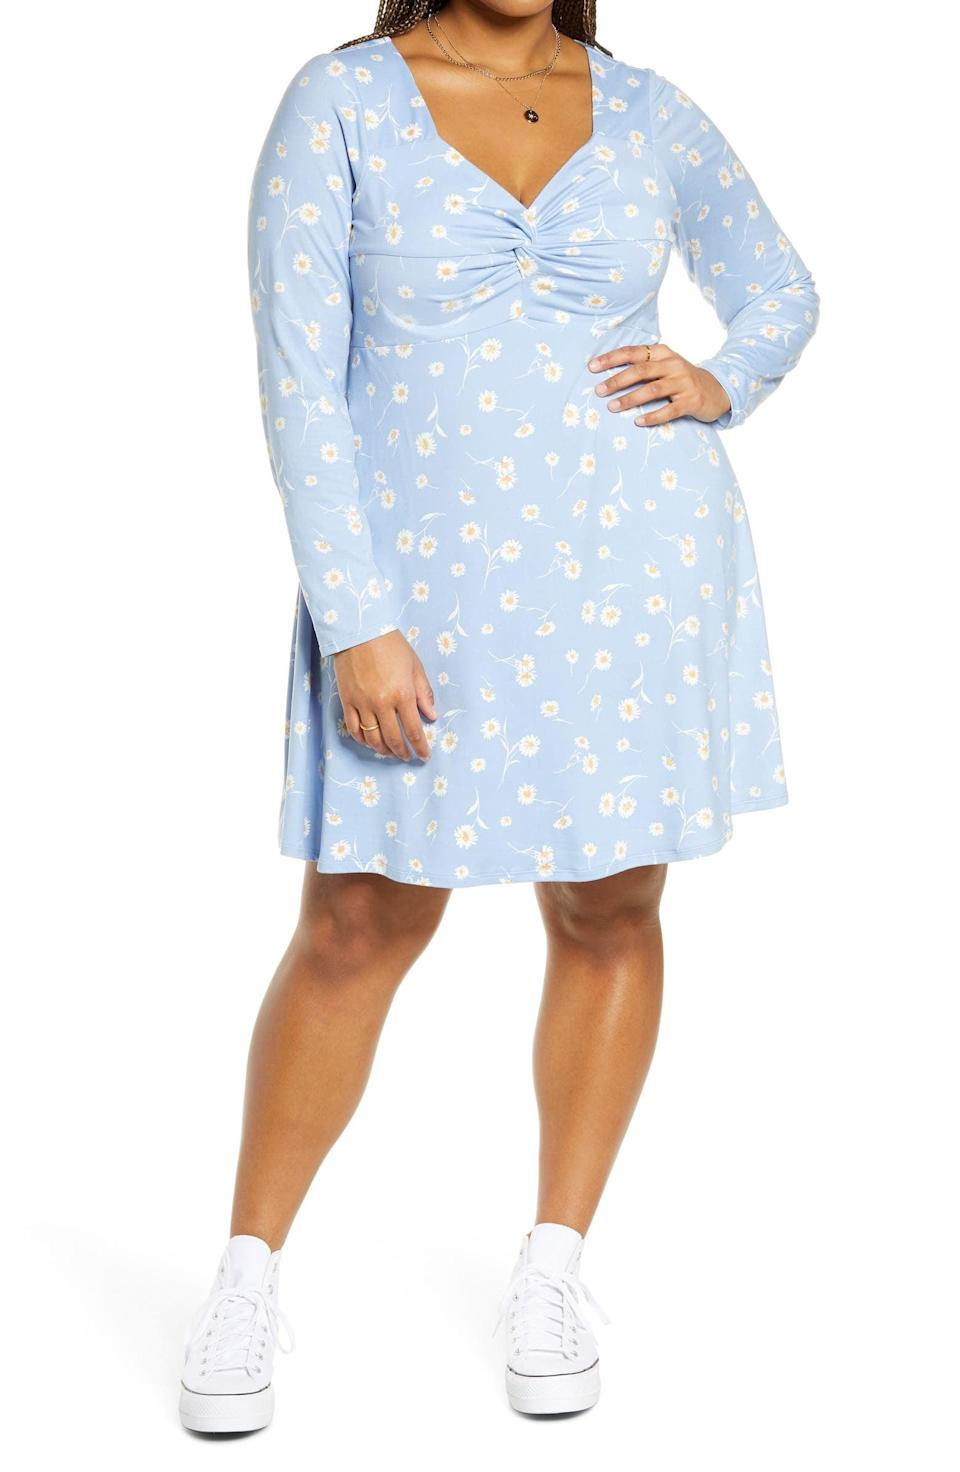 <p>Between the lovely print and elegant silhouette, this <span>BP. Floral Sweetheart Neck Long Sleeve Knit Dress</span> ($49) will get you noticed.</p>